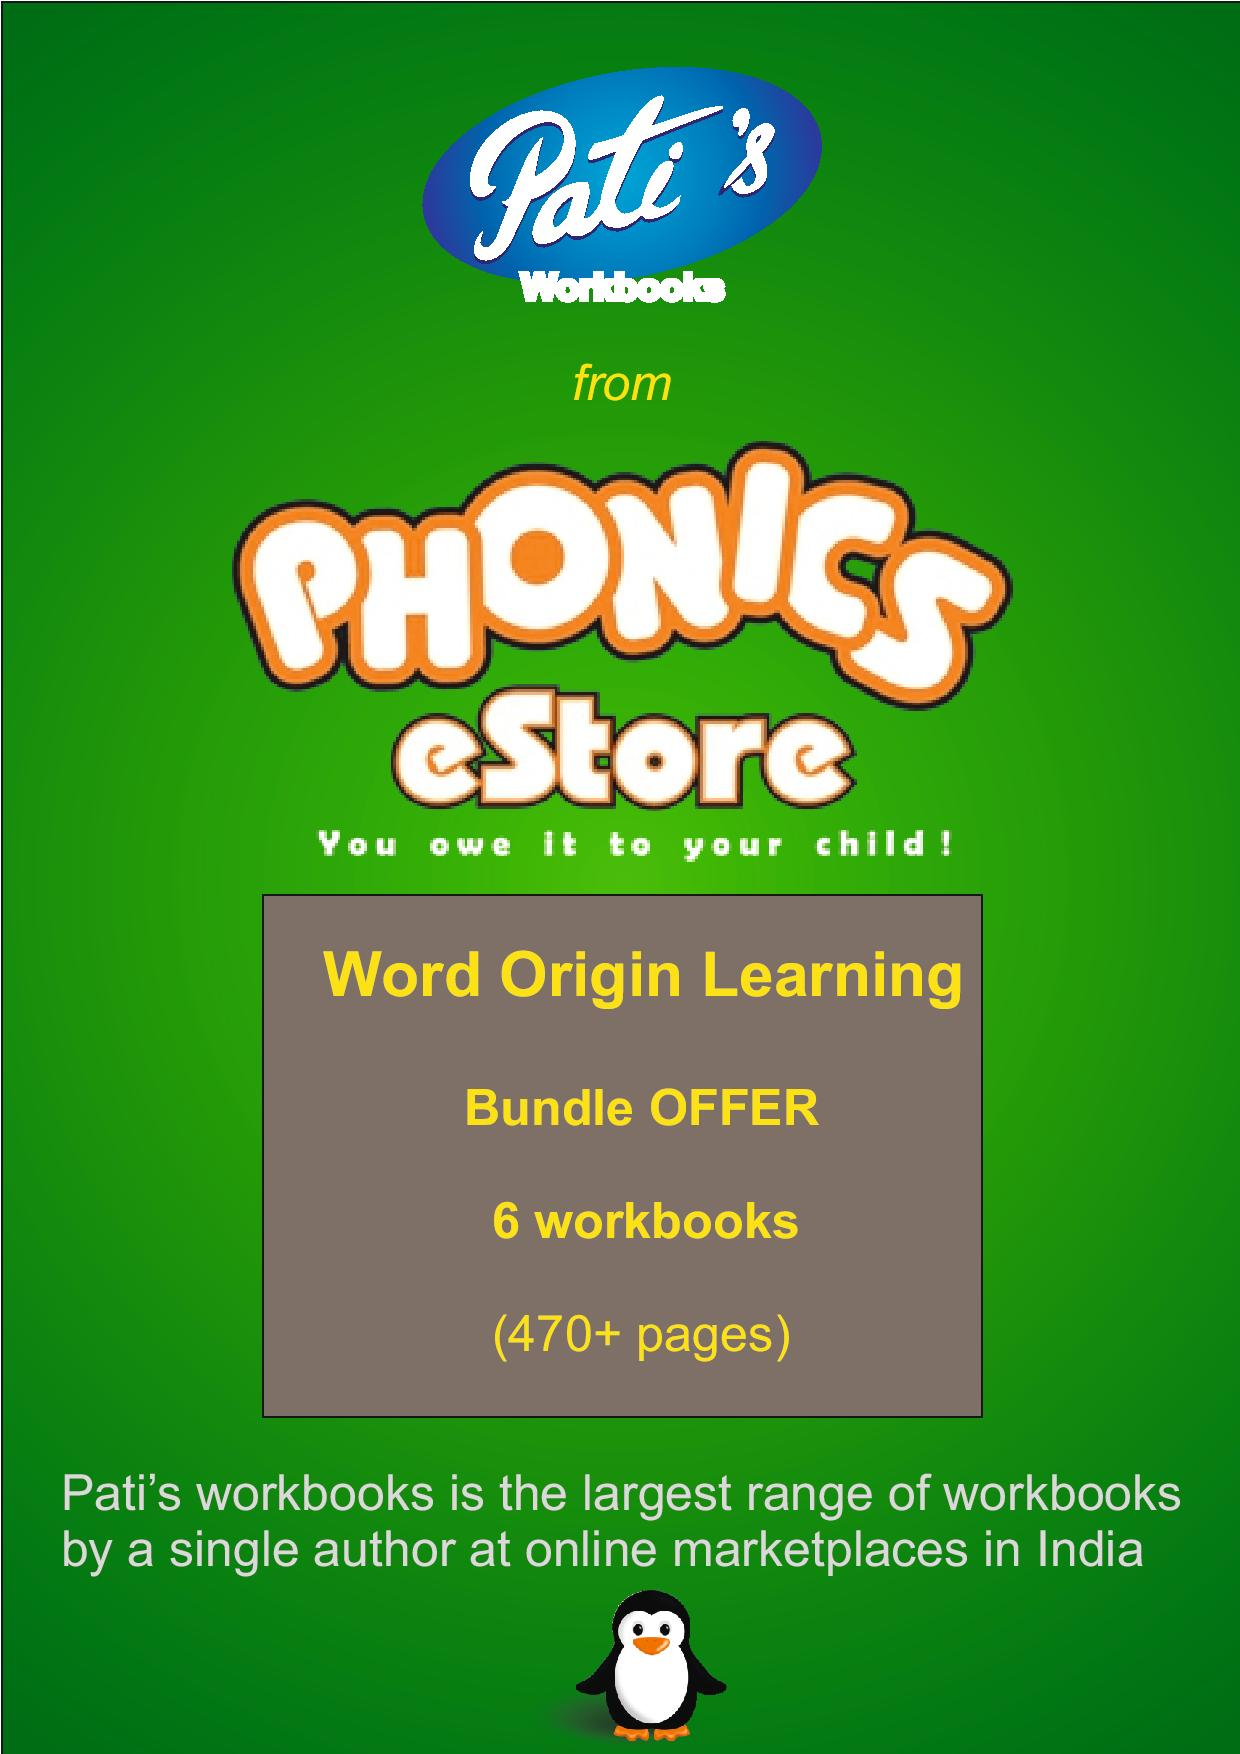 phonics classes in mulund bhandup